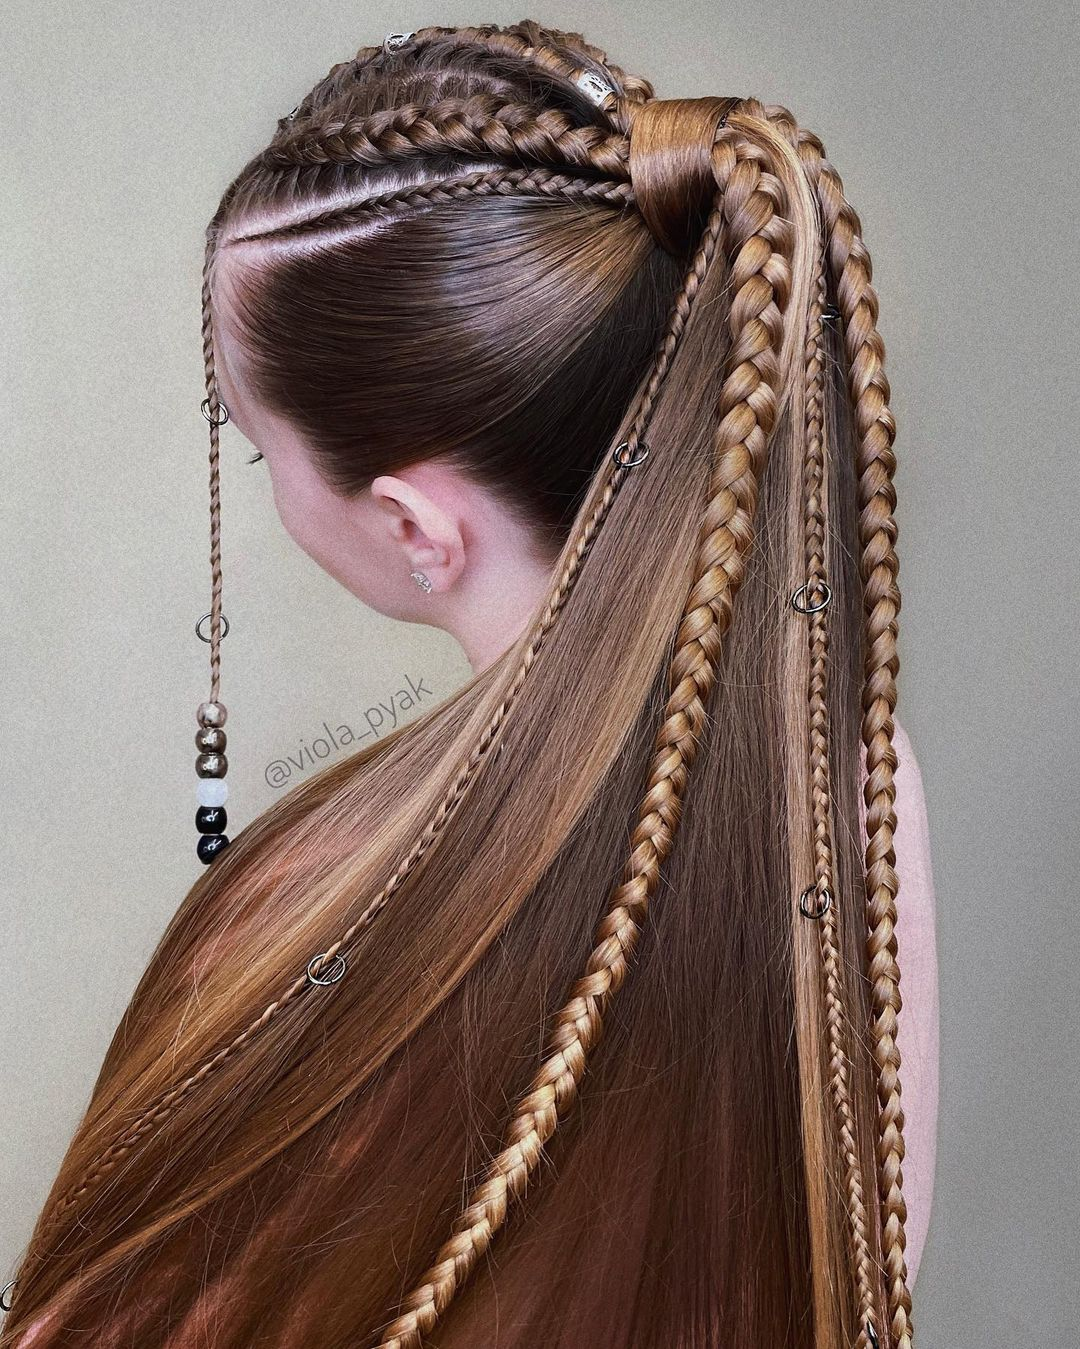 Ponytail with Different Braids